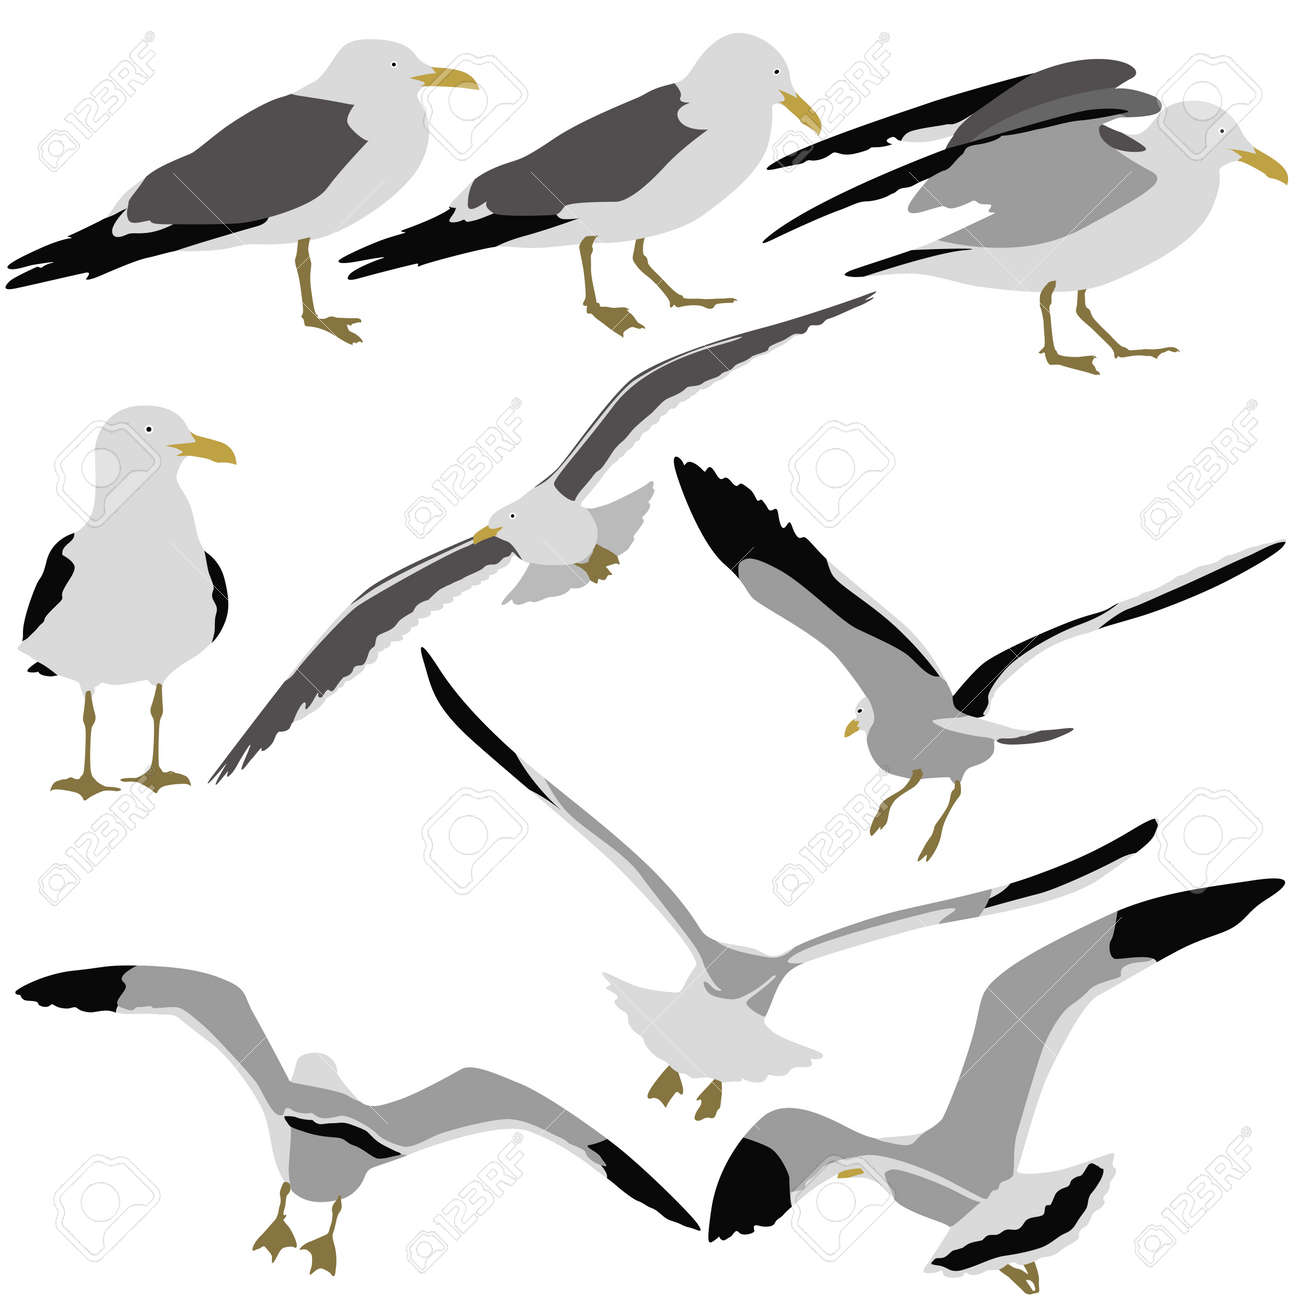 Set black silhouettes of seagulls on white background. Vector illustrations. - 31715605